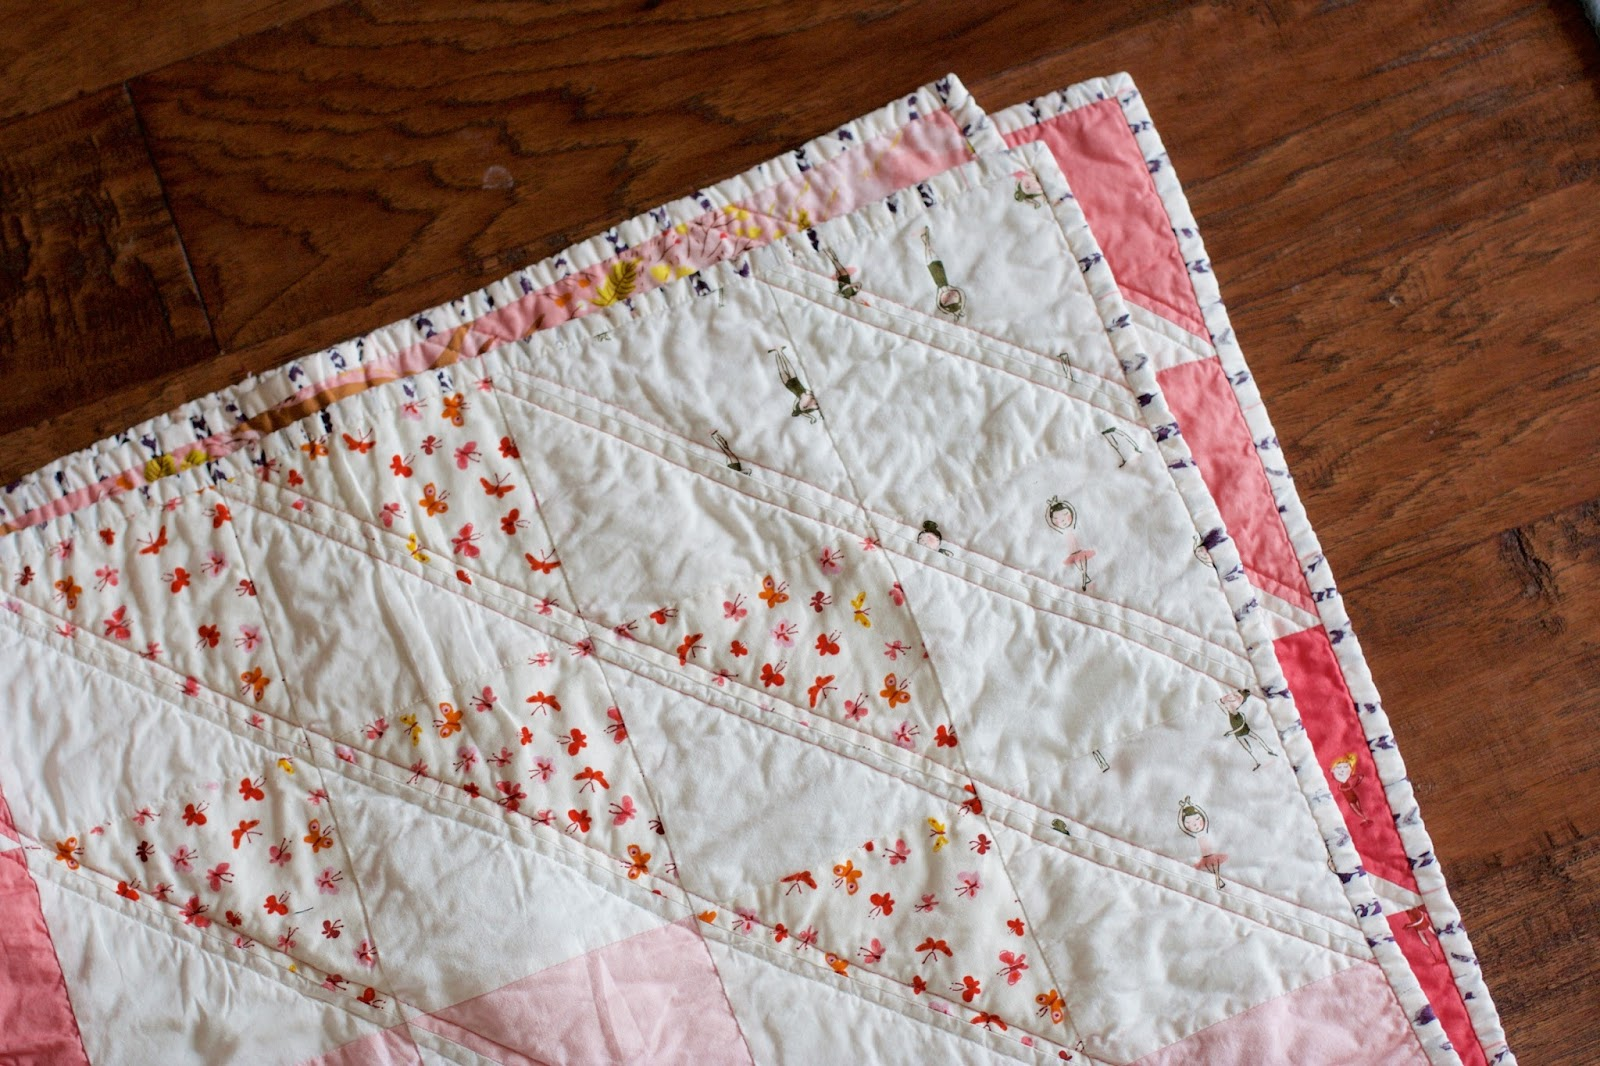 how to keep quilt from puckering